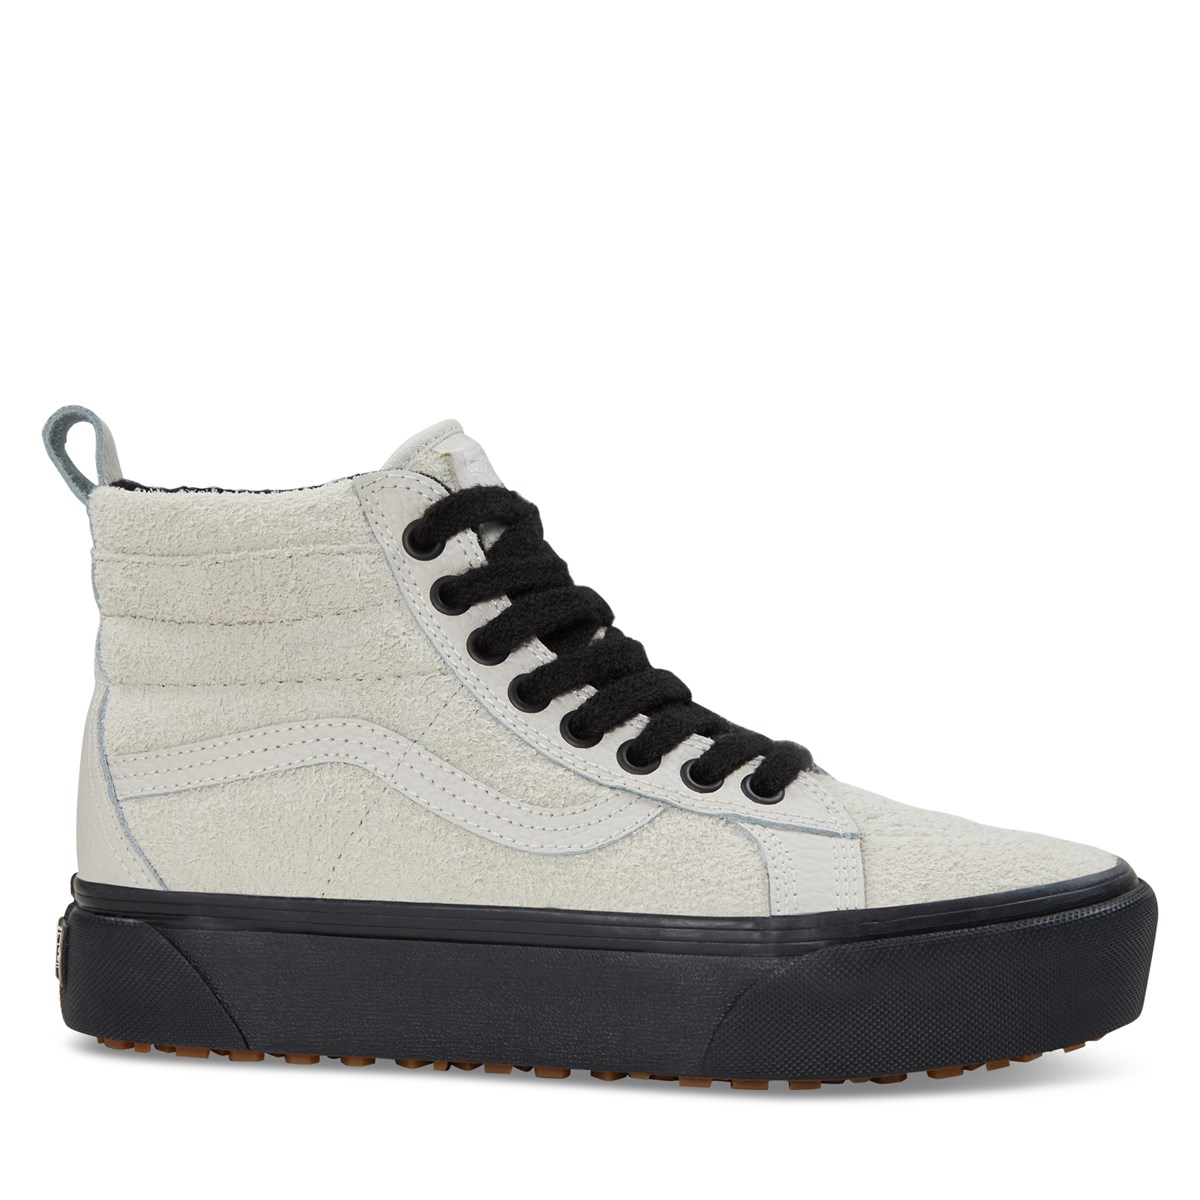 Women's SK8-Hi Platform MTE Sneakers in White